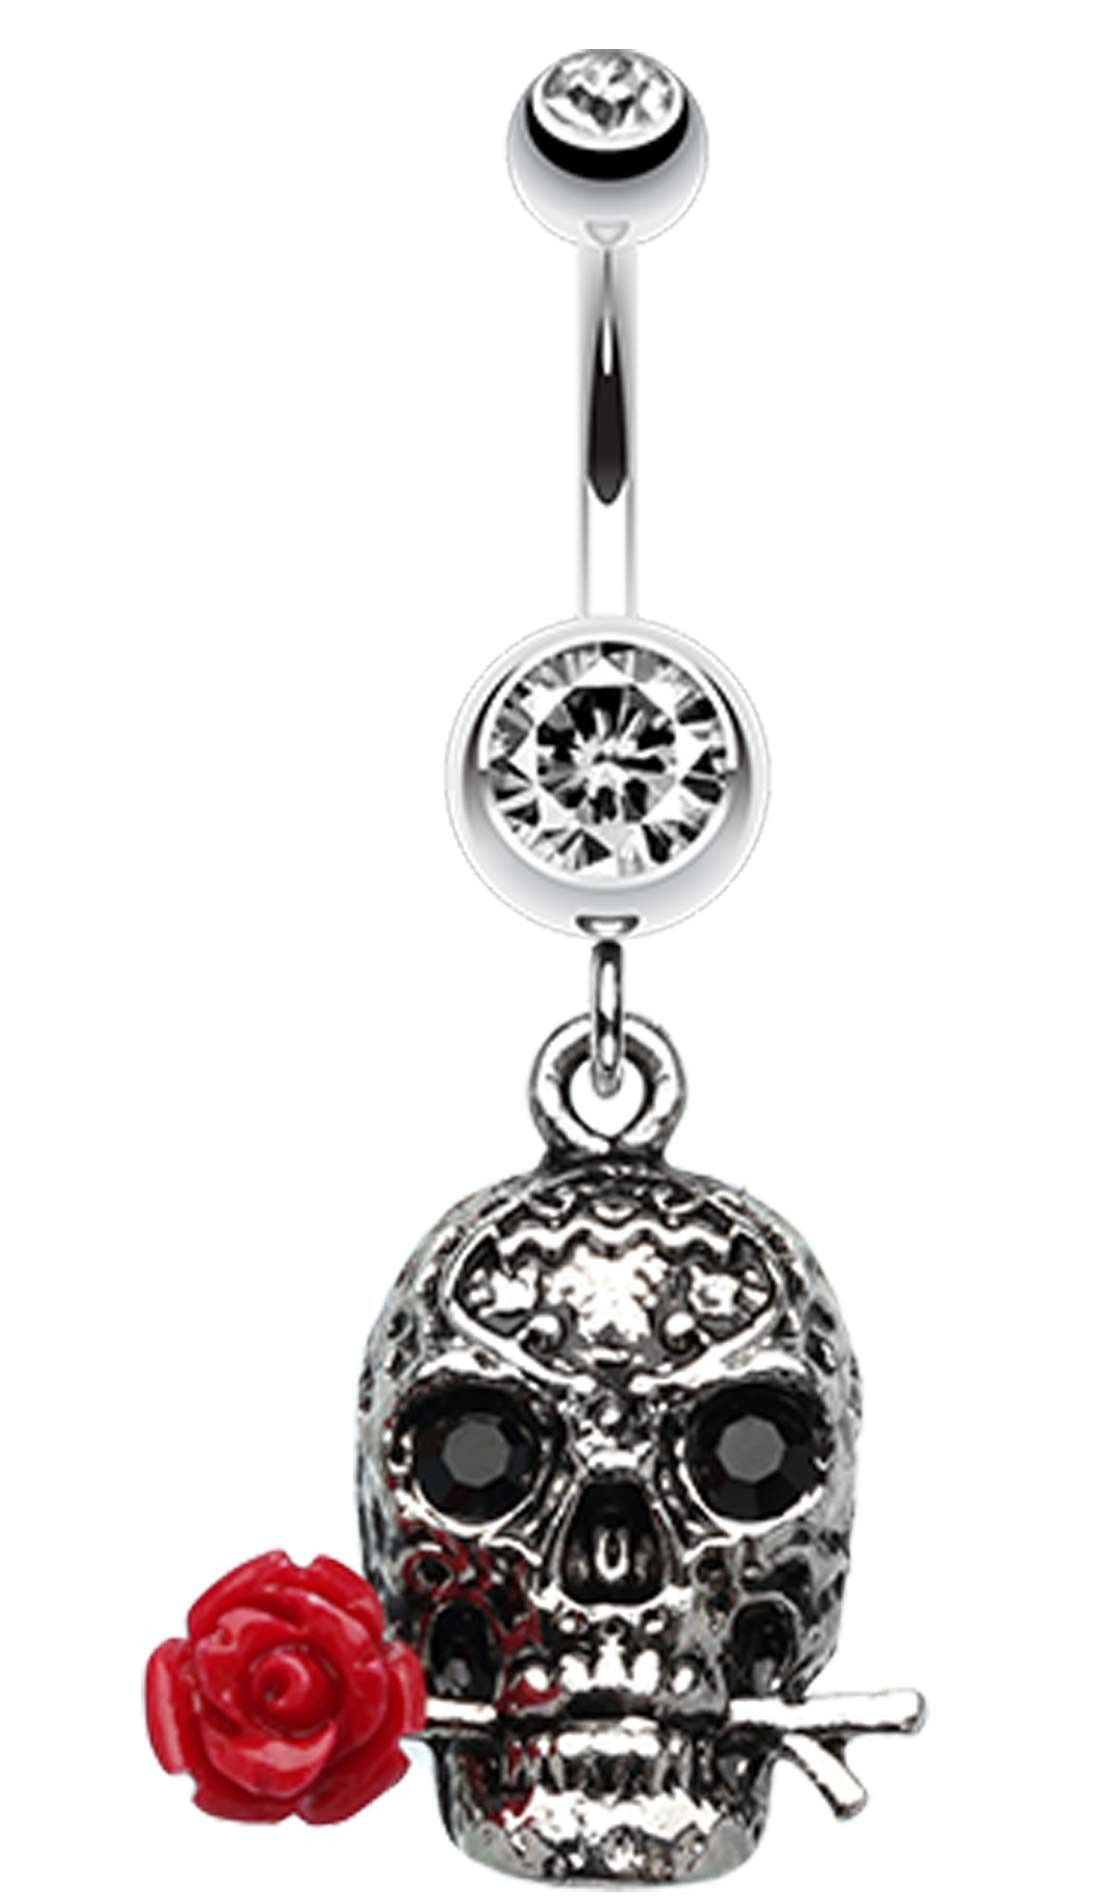 Elegant nose piercing  Skull Rose Beauty Belly Button Ring  Diamonds Rings u Shiny Things